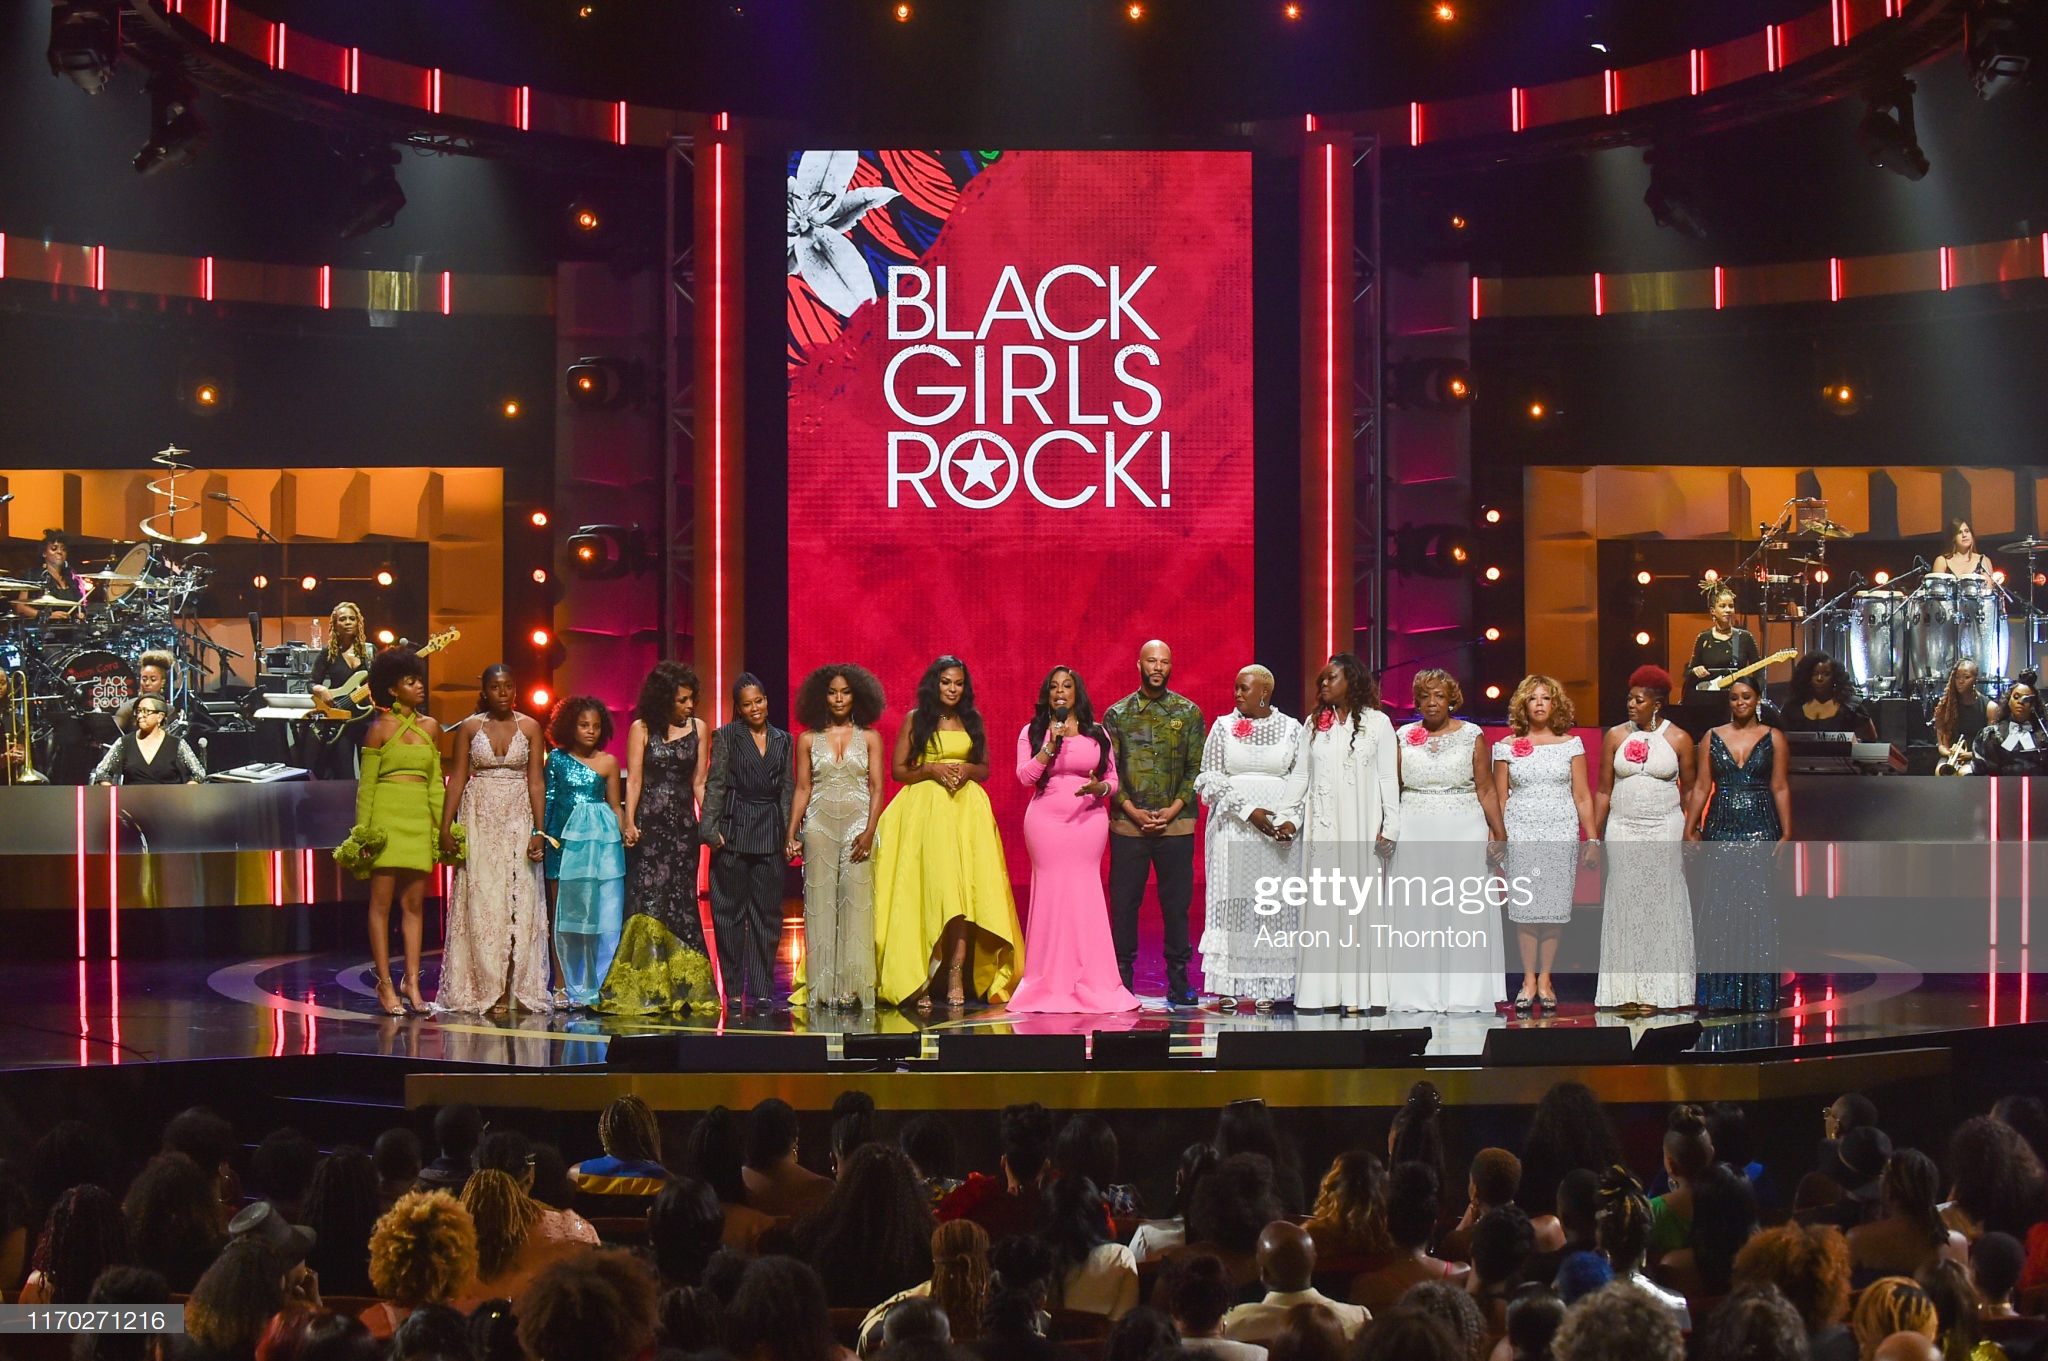 NEWARK, NEW JERSEY - AUGUST 25: Performers and Honorees onstage, including Debra Chase Martin, Regina King, Angela Bassett, Beverly Bond, Niecy Nash and Common at NJ Performing Arts Center on August 25, 2019 in Newark, New Jersey. (Photo by Aaron J. Thornton/WireImage)